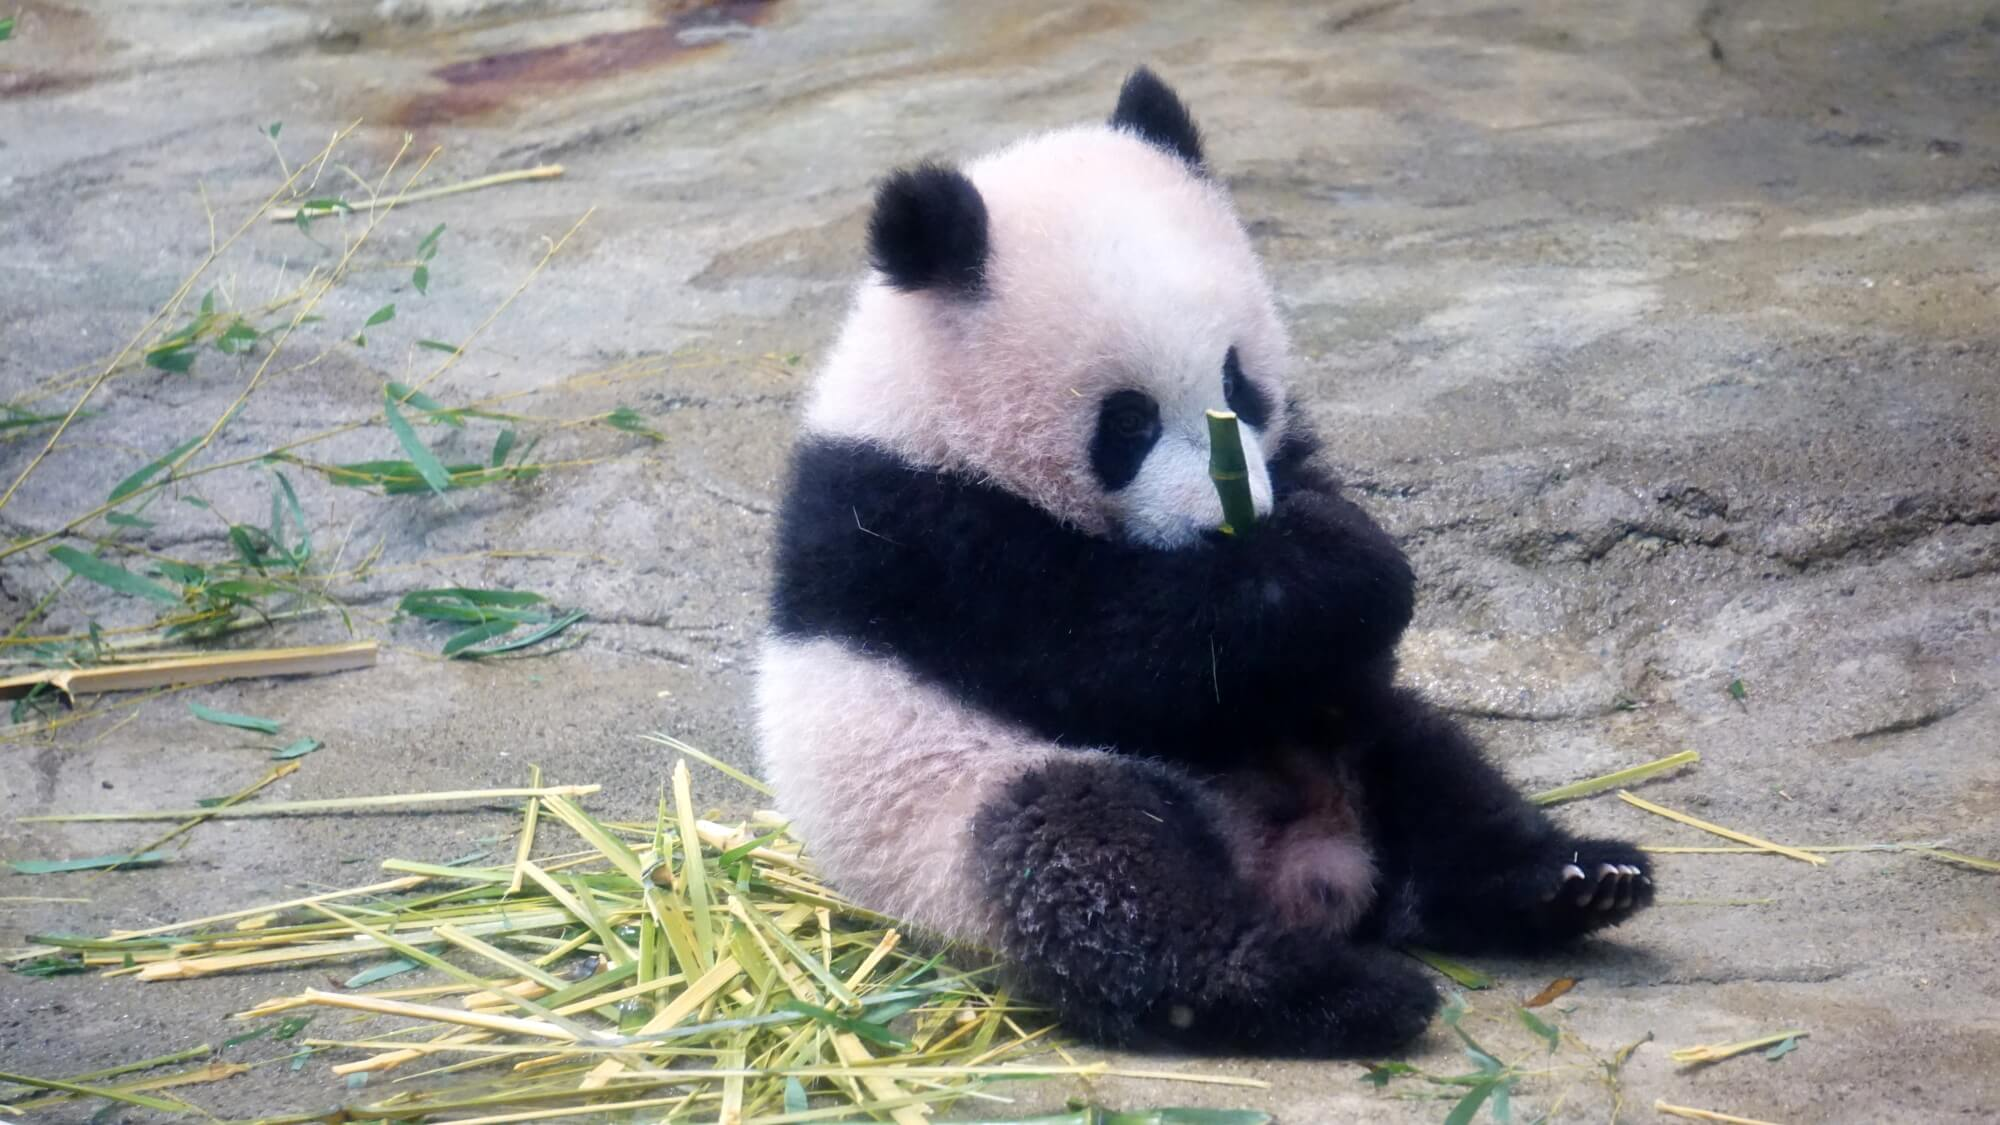 Panda Xiang Xiang unite Japanese capital and Chinese city to promote tourism